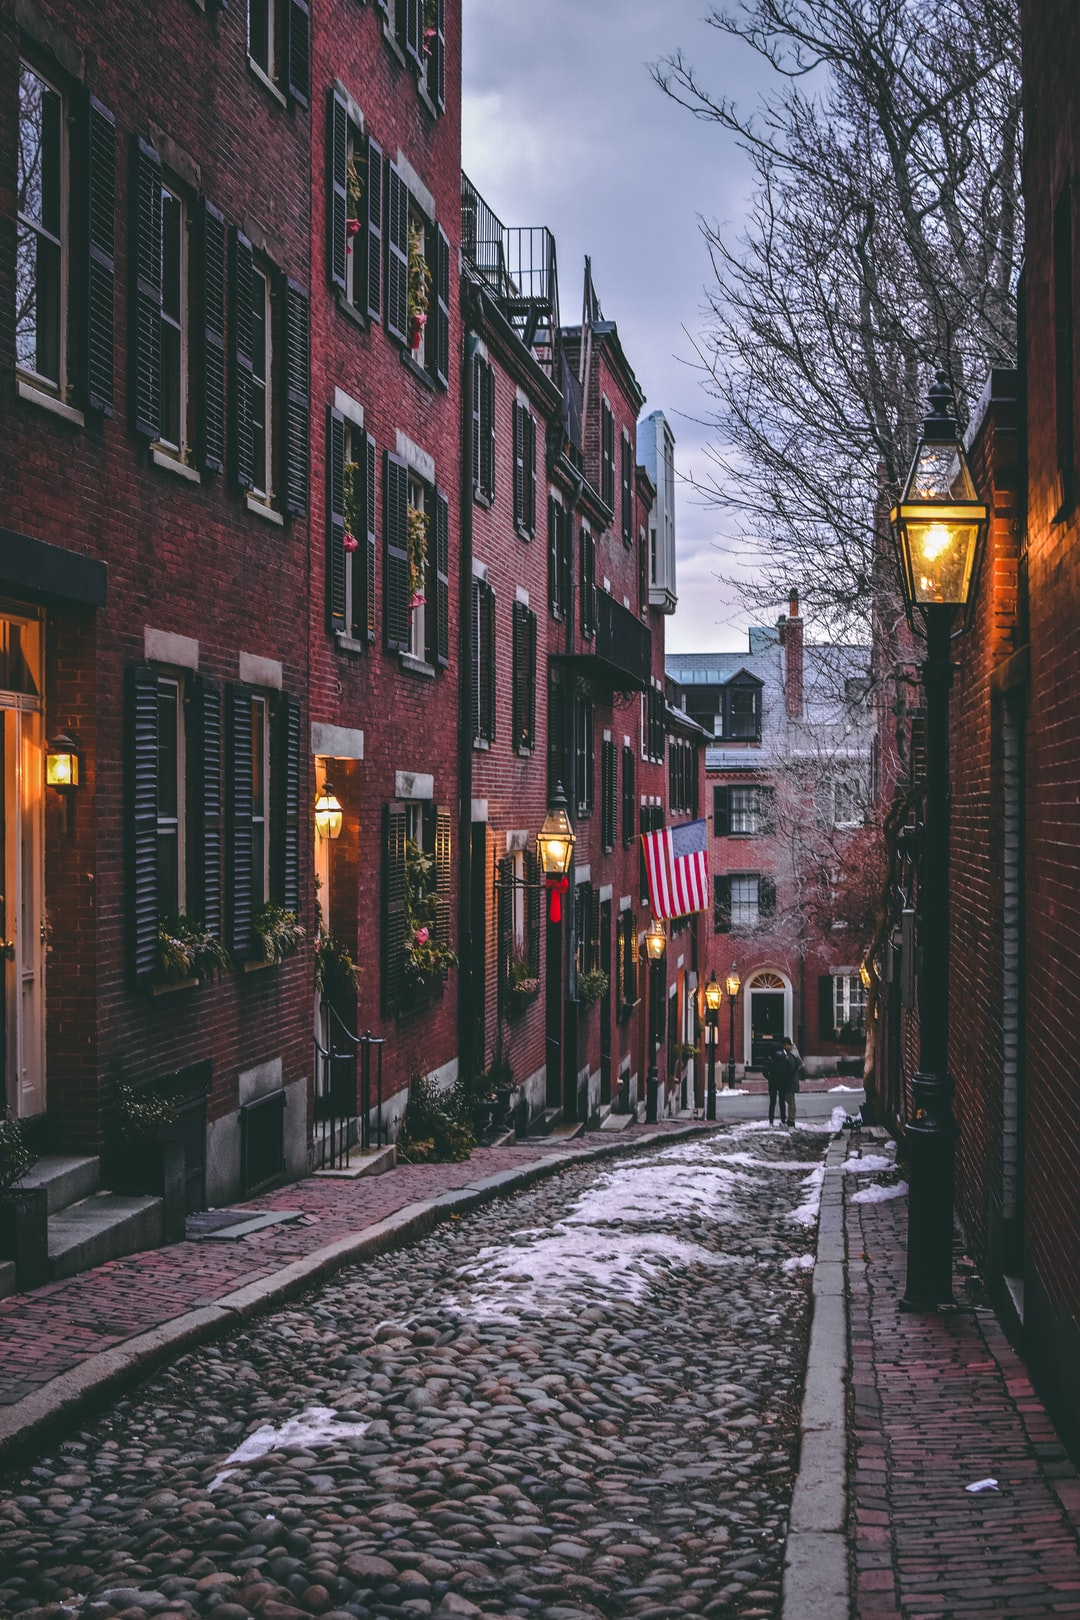 They say that Acorn Street is the most photographed street in Boston so it's rare to have it be so quiet.